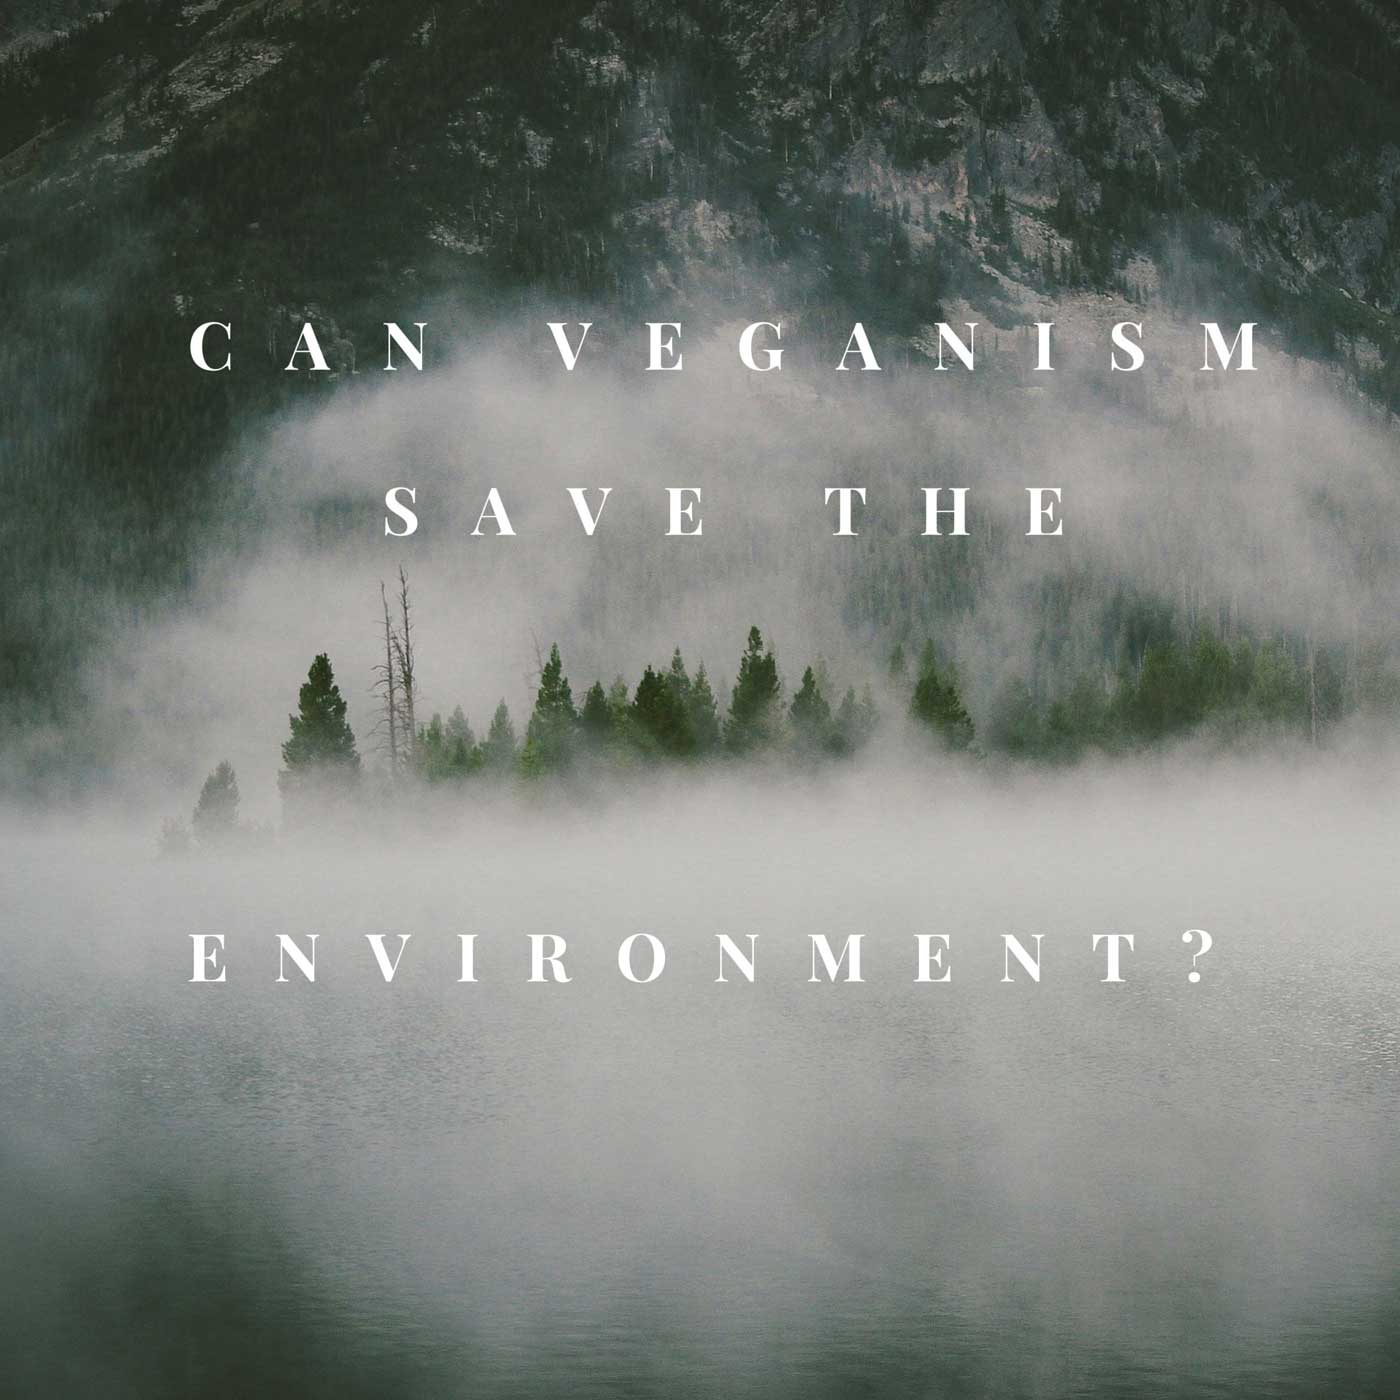 veganism enviornment